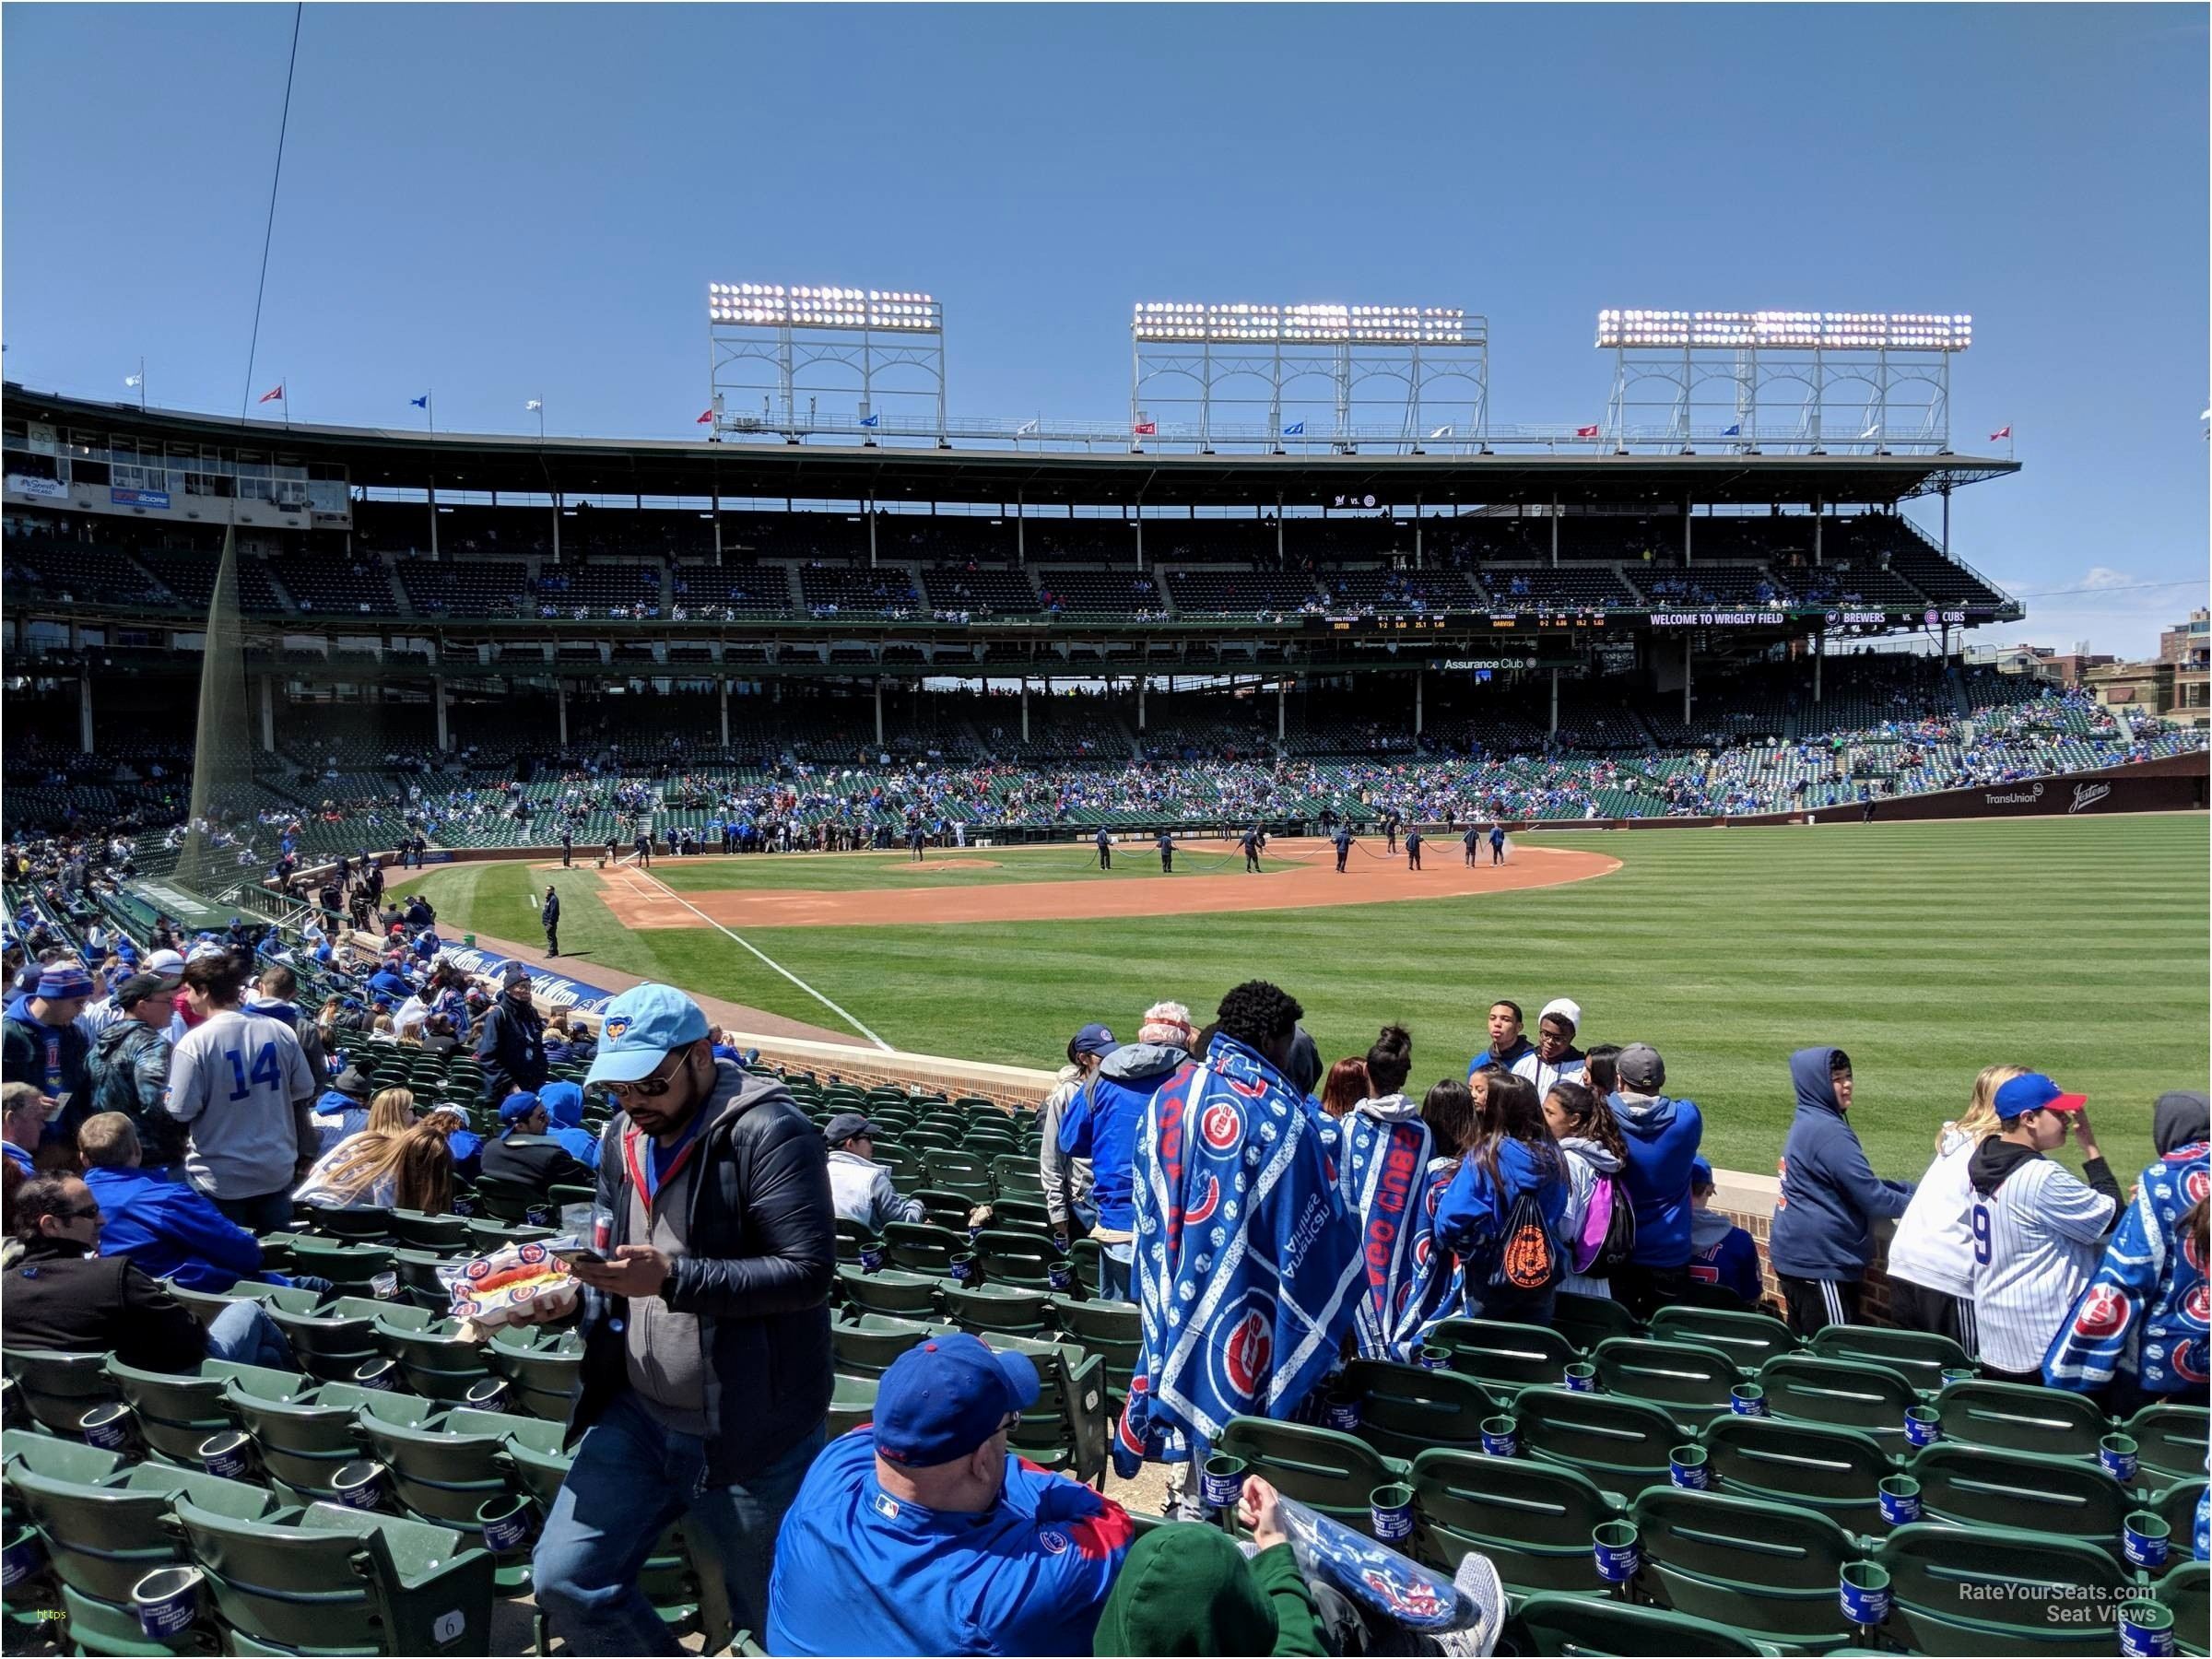 2400x1800 ... Wrigley Field Wallpaper Luxury Wrigley Field Section 140 Chicago Cubs  Rateyourseats ...